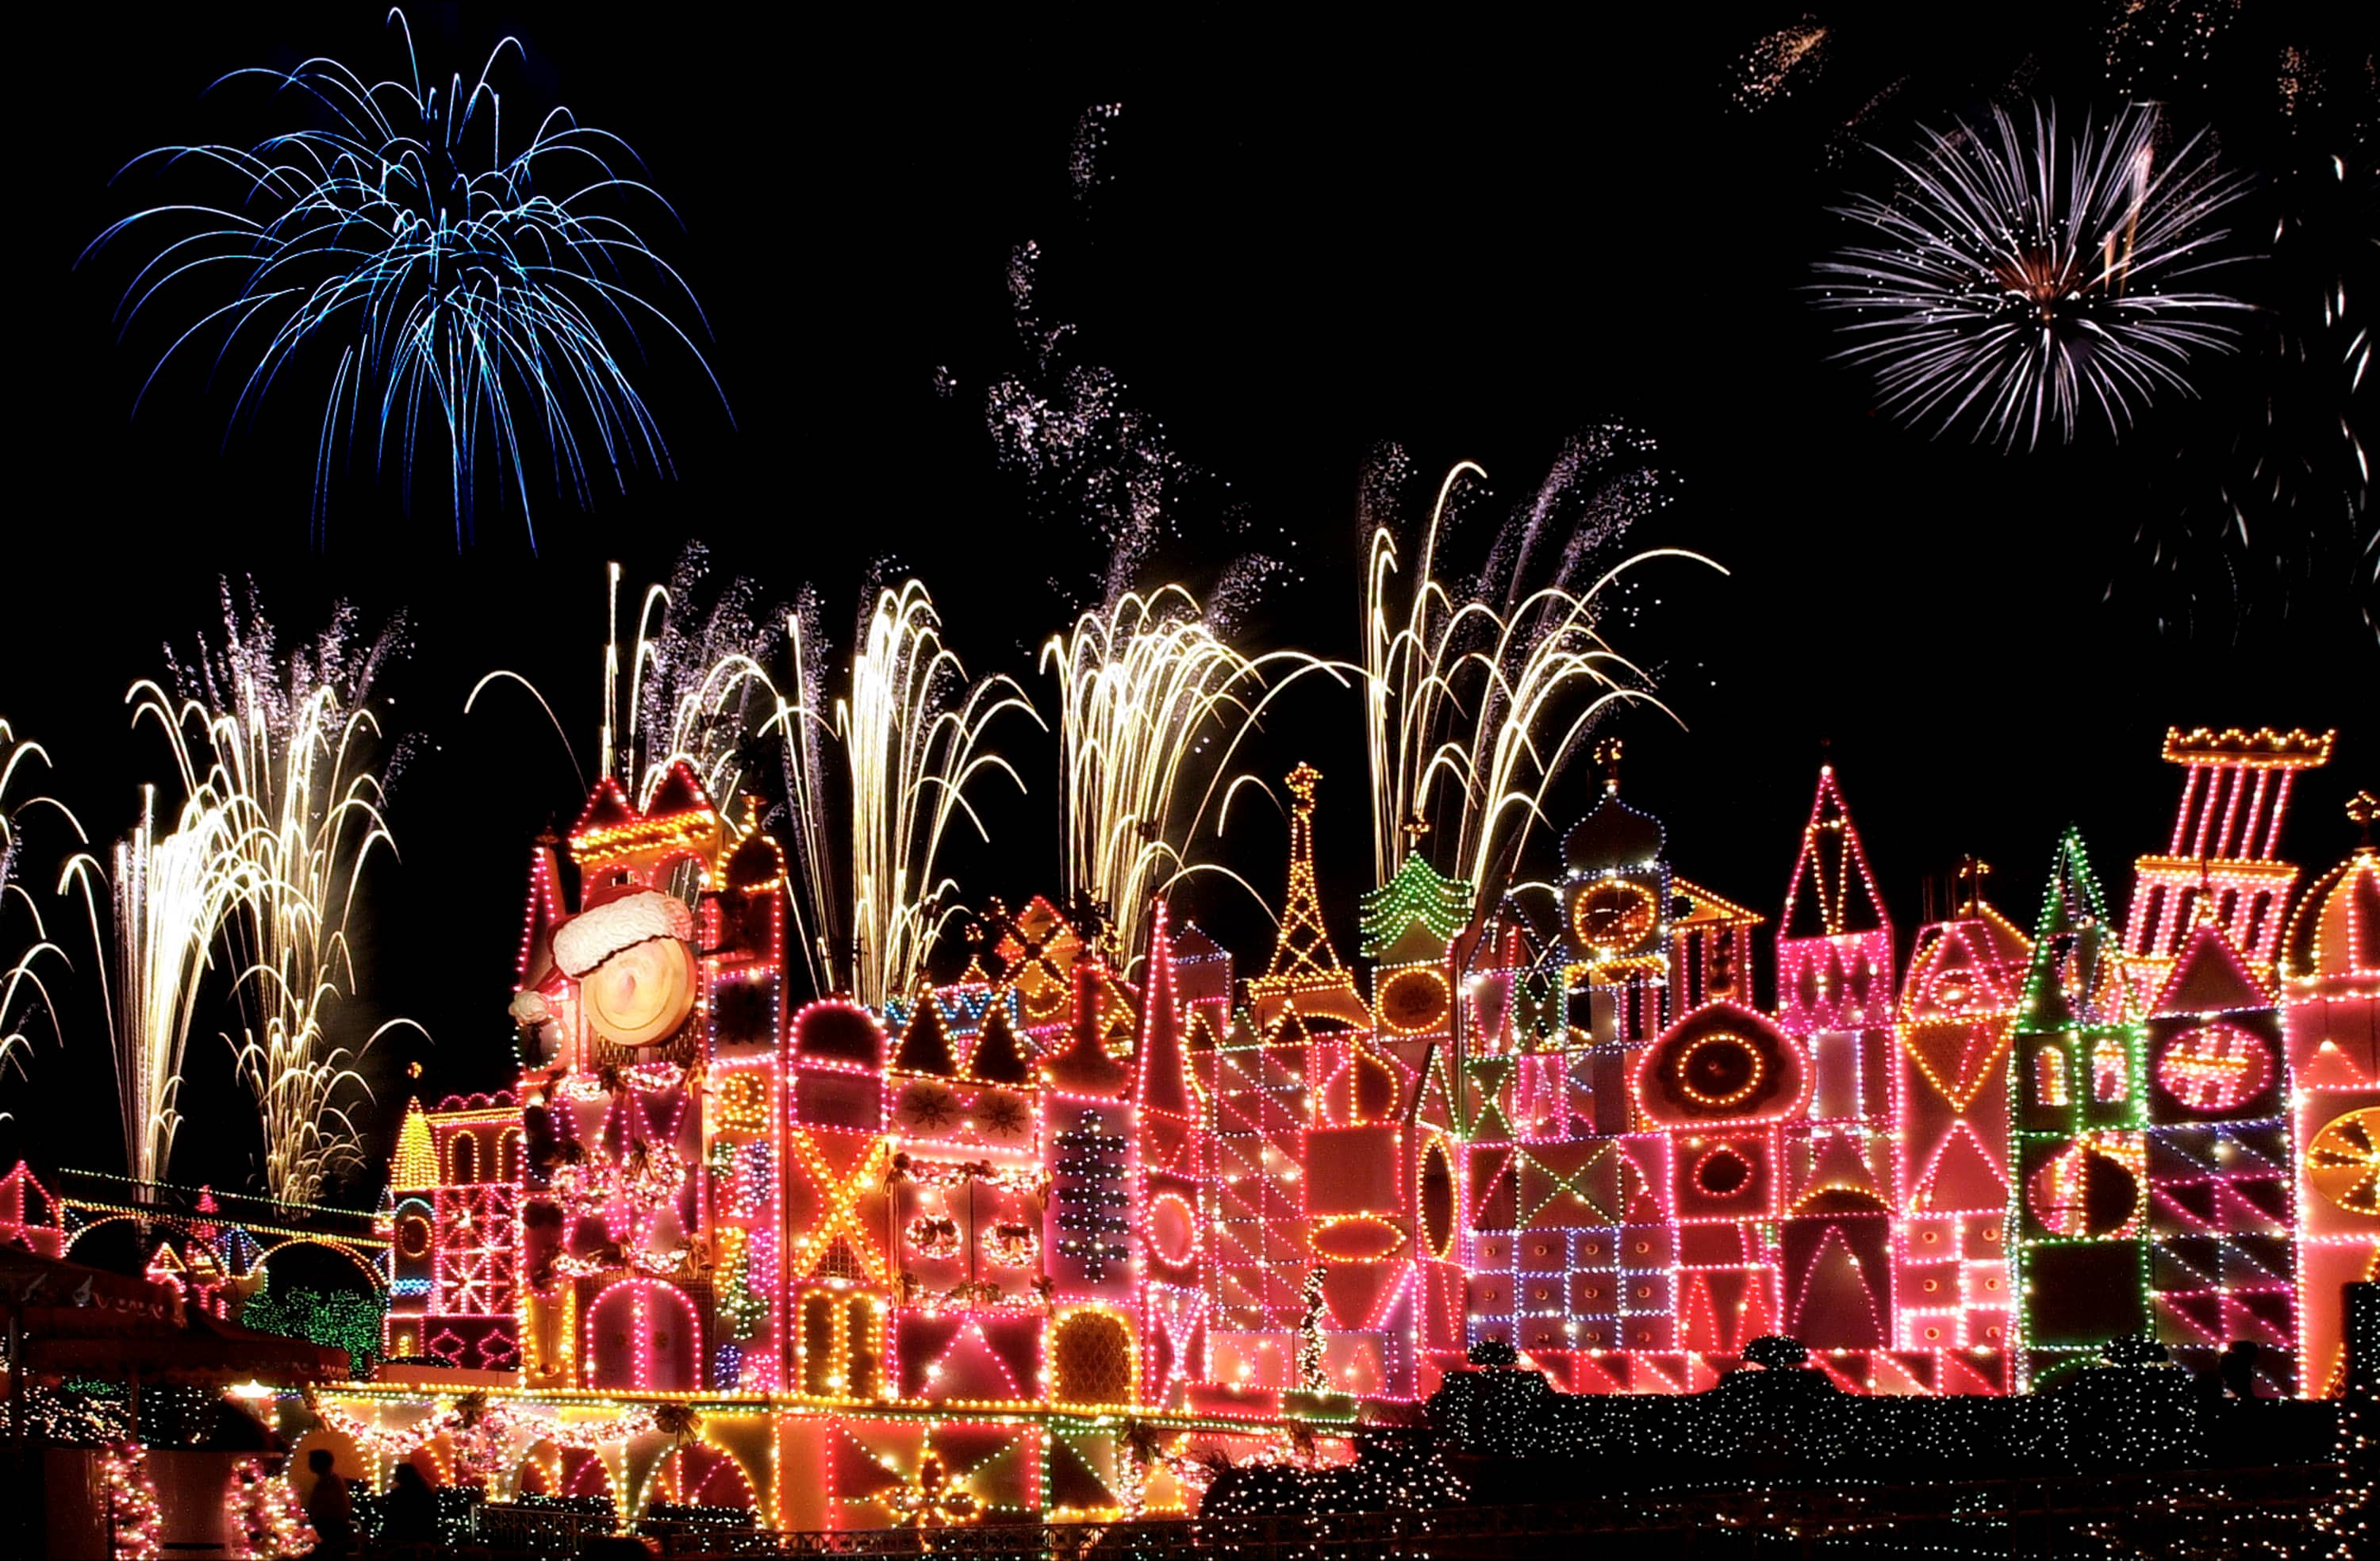 Happy New Year from the Disneyland Resort | Disney Parks Blog